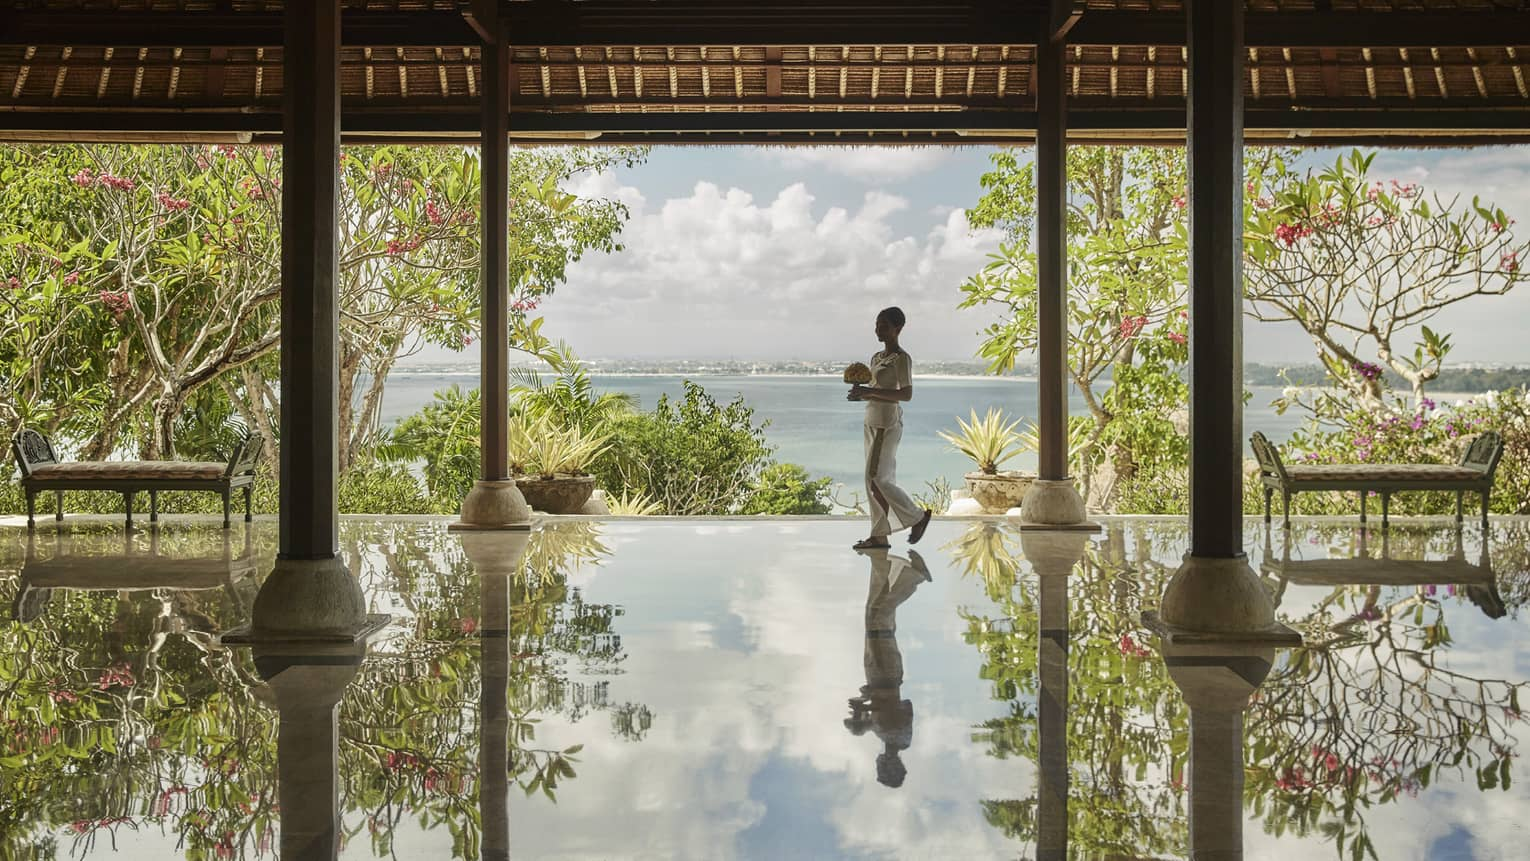 Hotel staff carrying flowers reflected onto floor of open-air pavilion